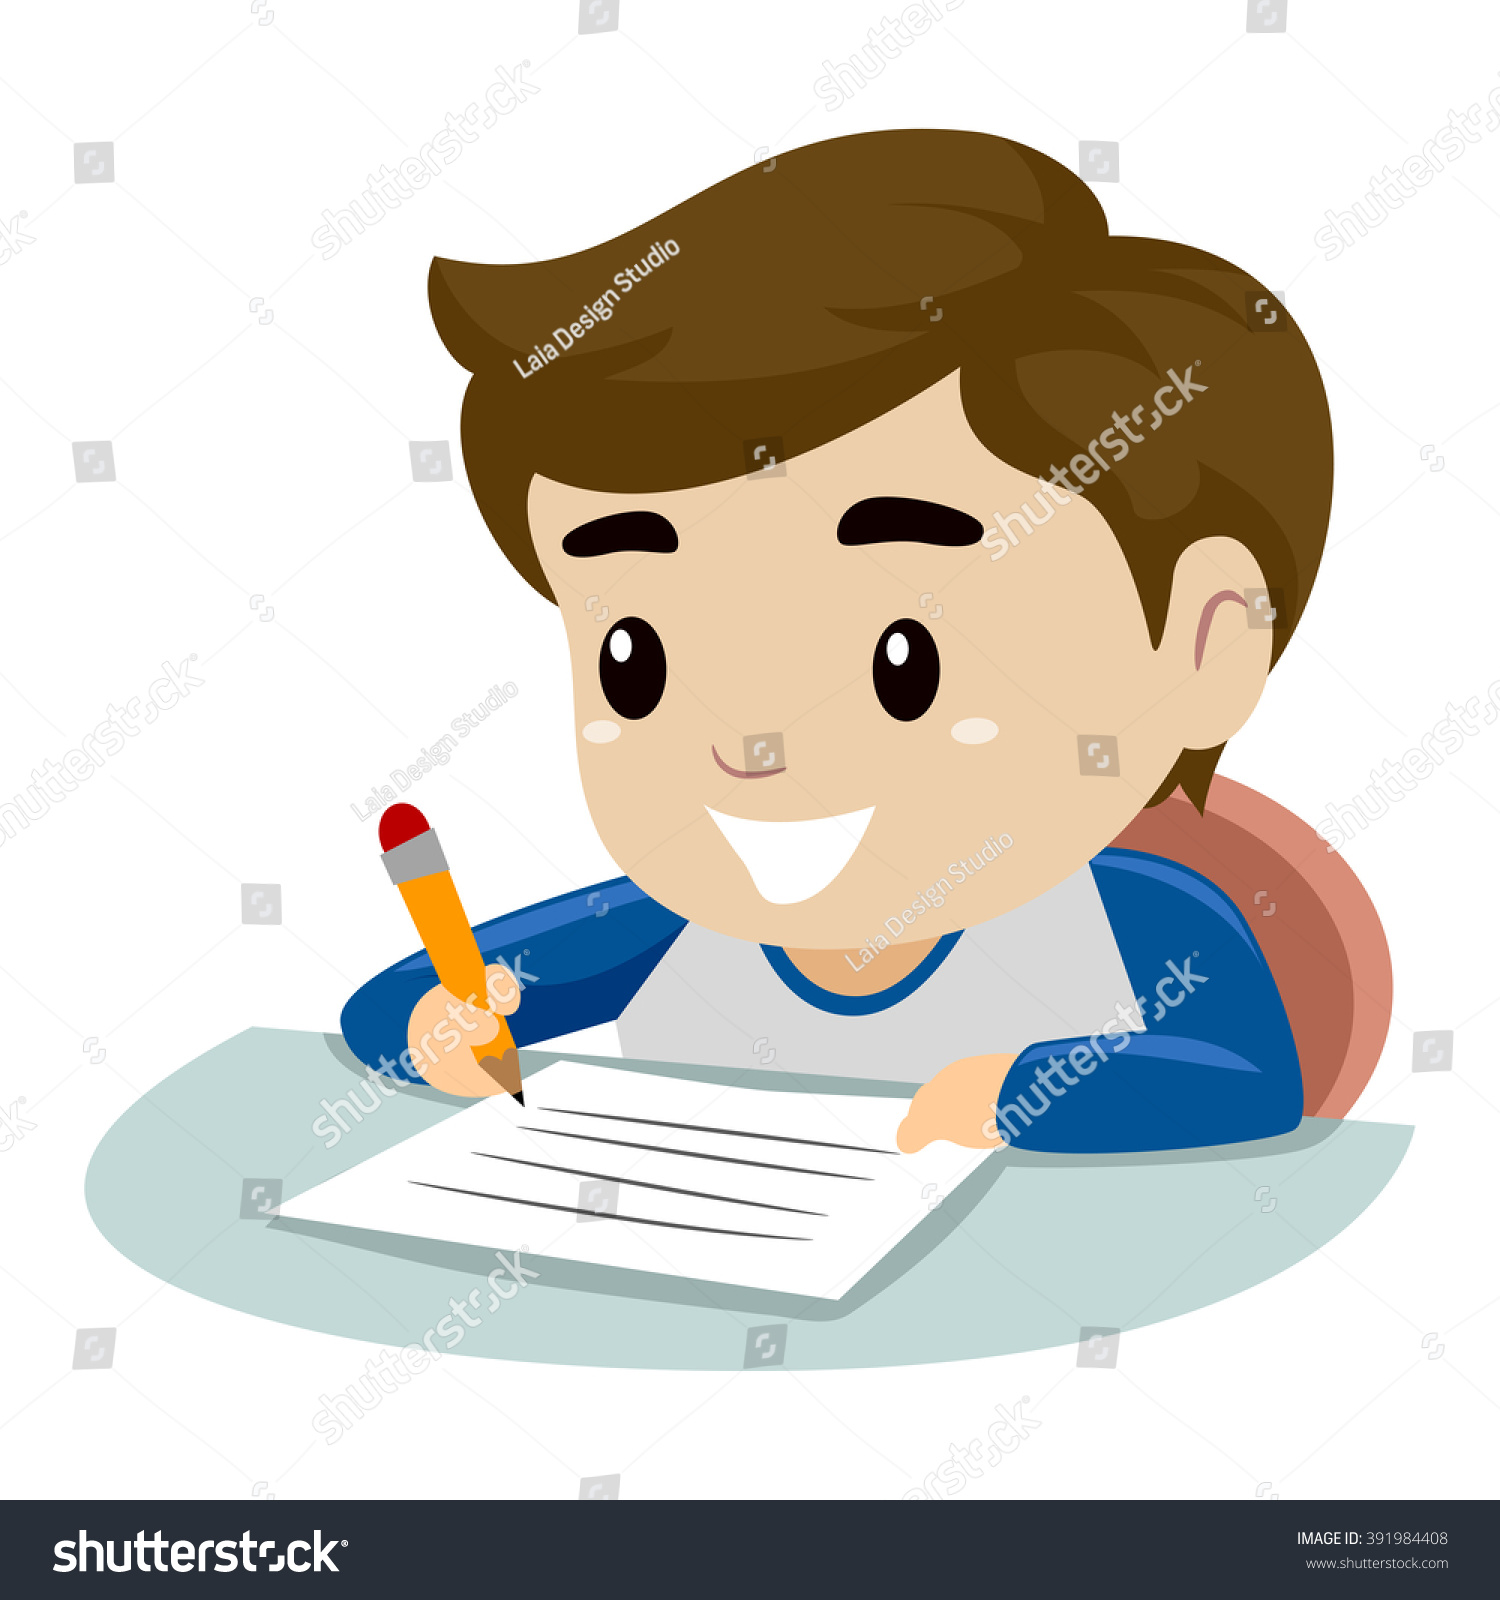 write on a piece of paper Write it on a piece of paper 79 likes you suddenly get awake in the middle of the night with nice thoughts you just wanna write it on a piece of paper.